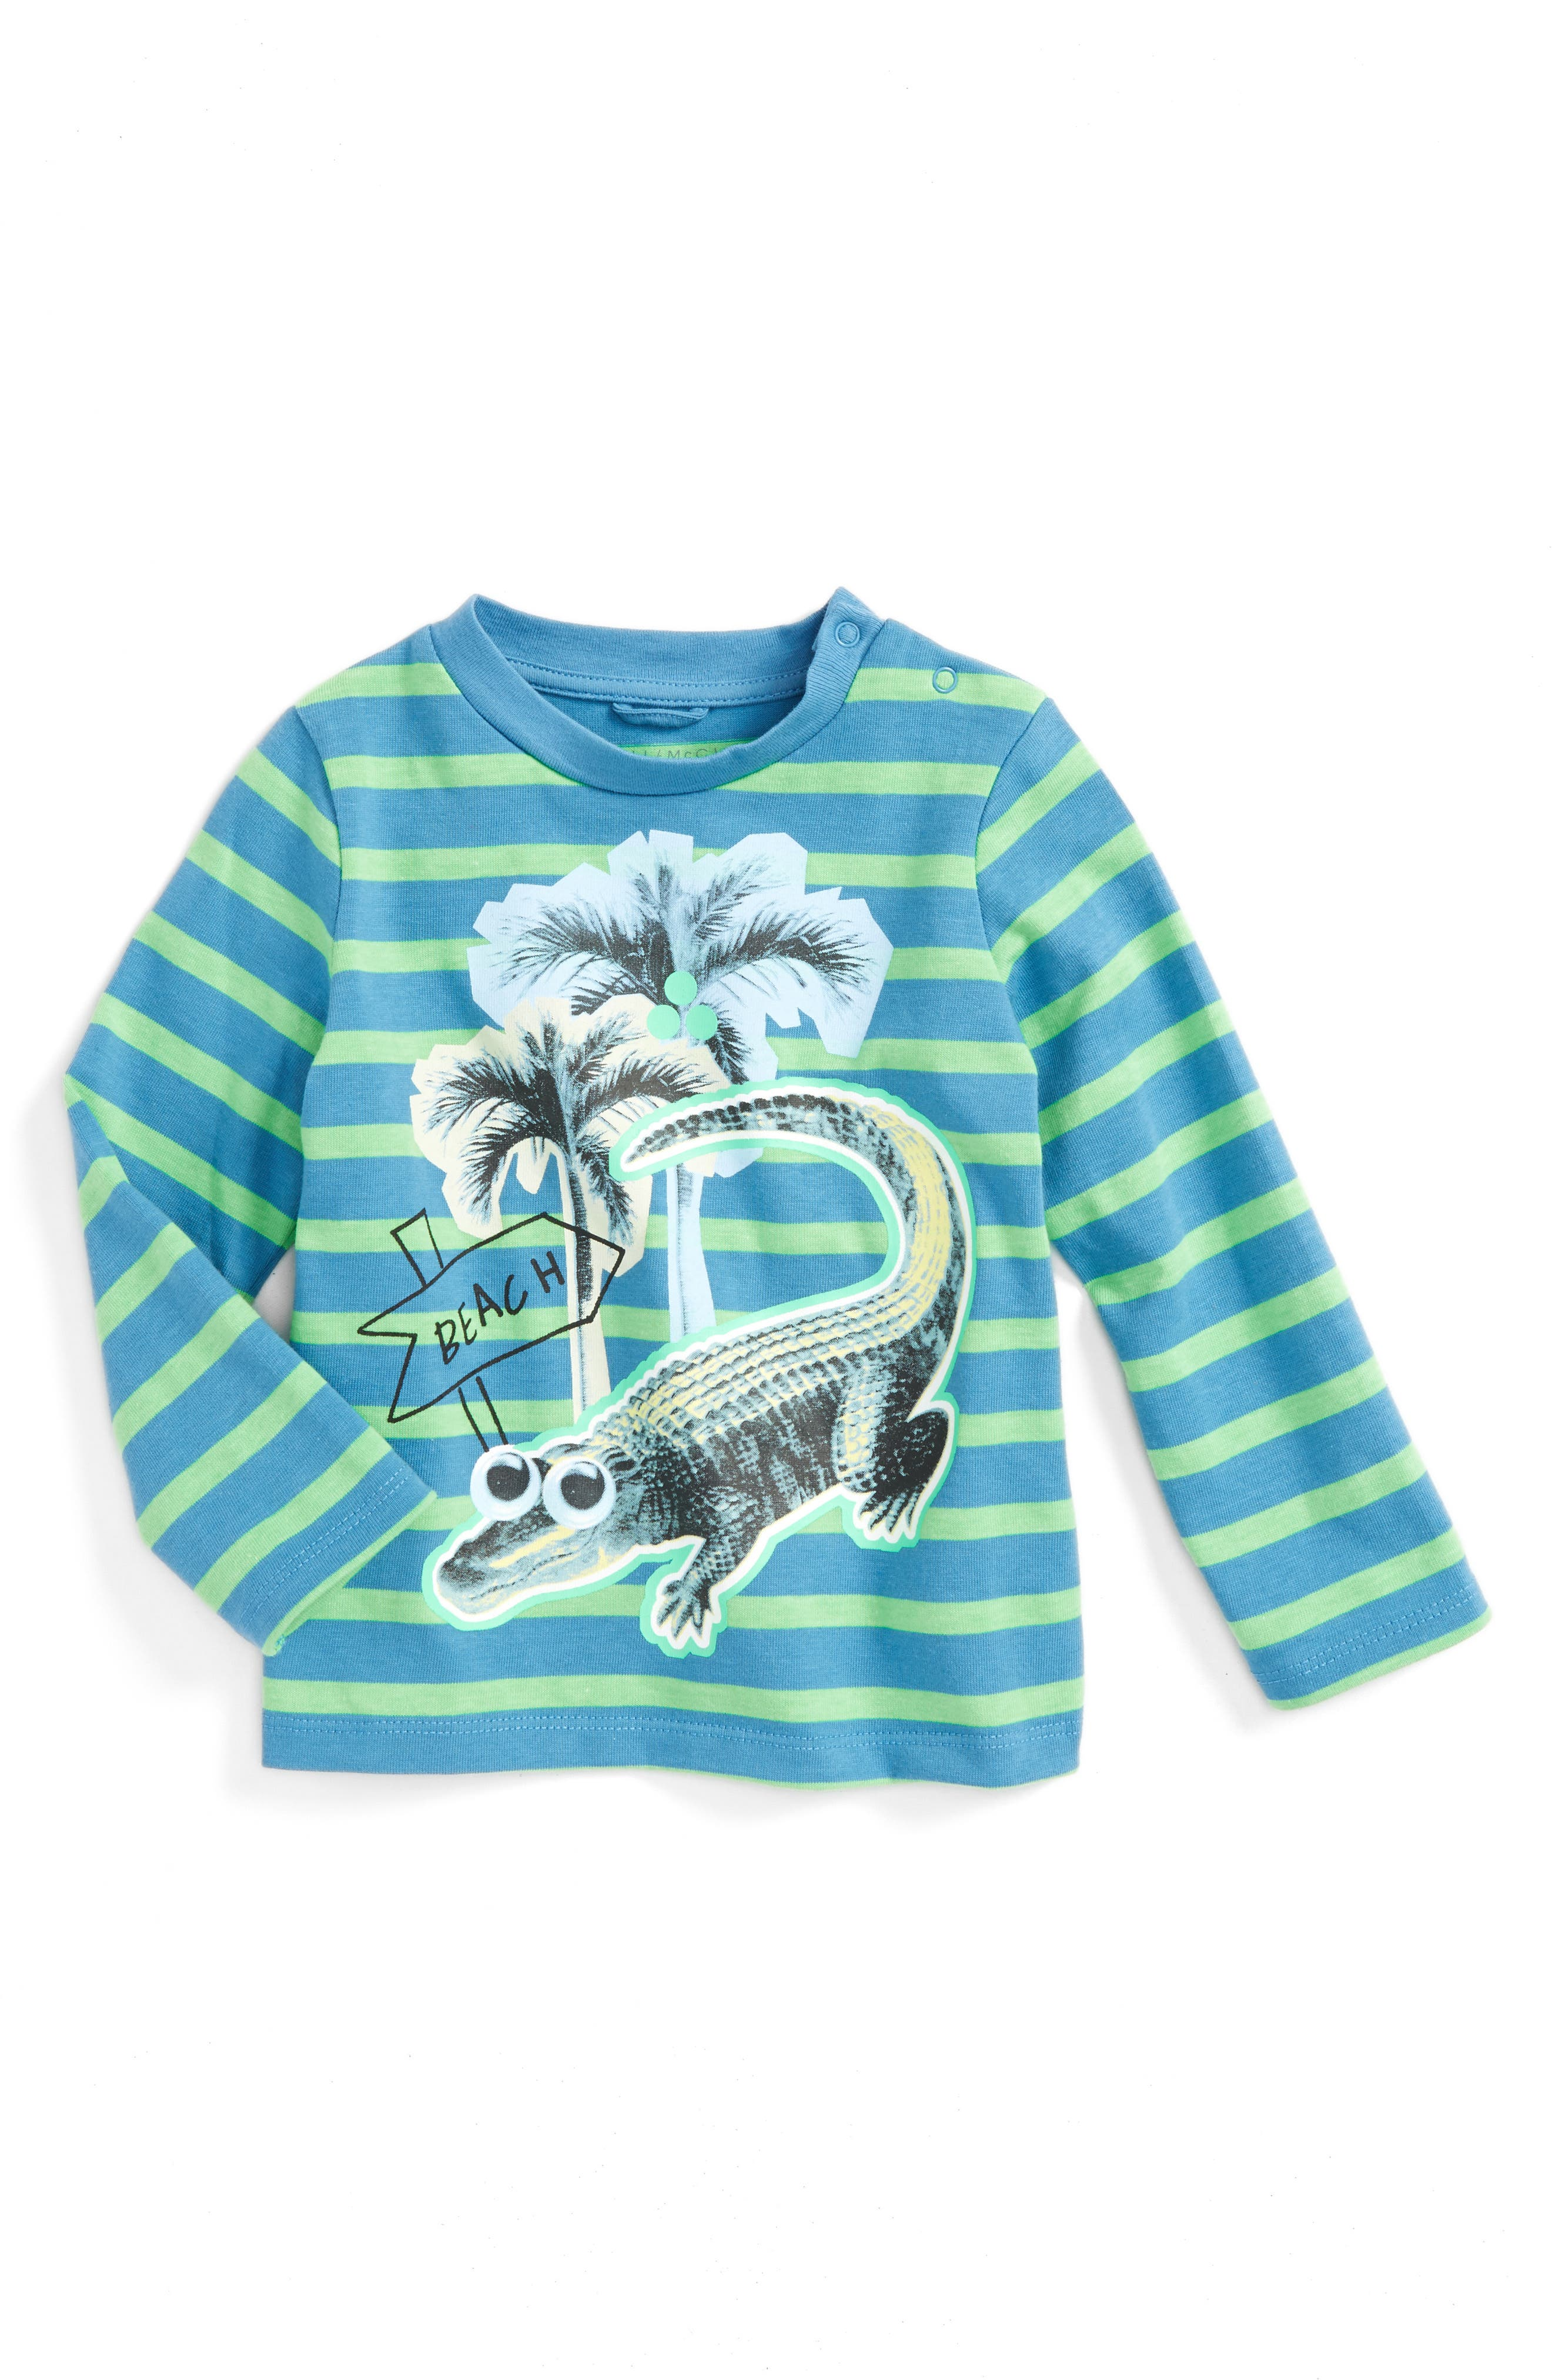 Stella McCartney Kids Alligator T-Shirt (Baby)